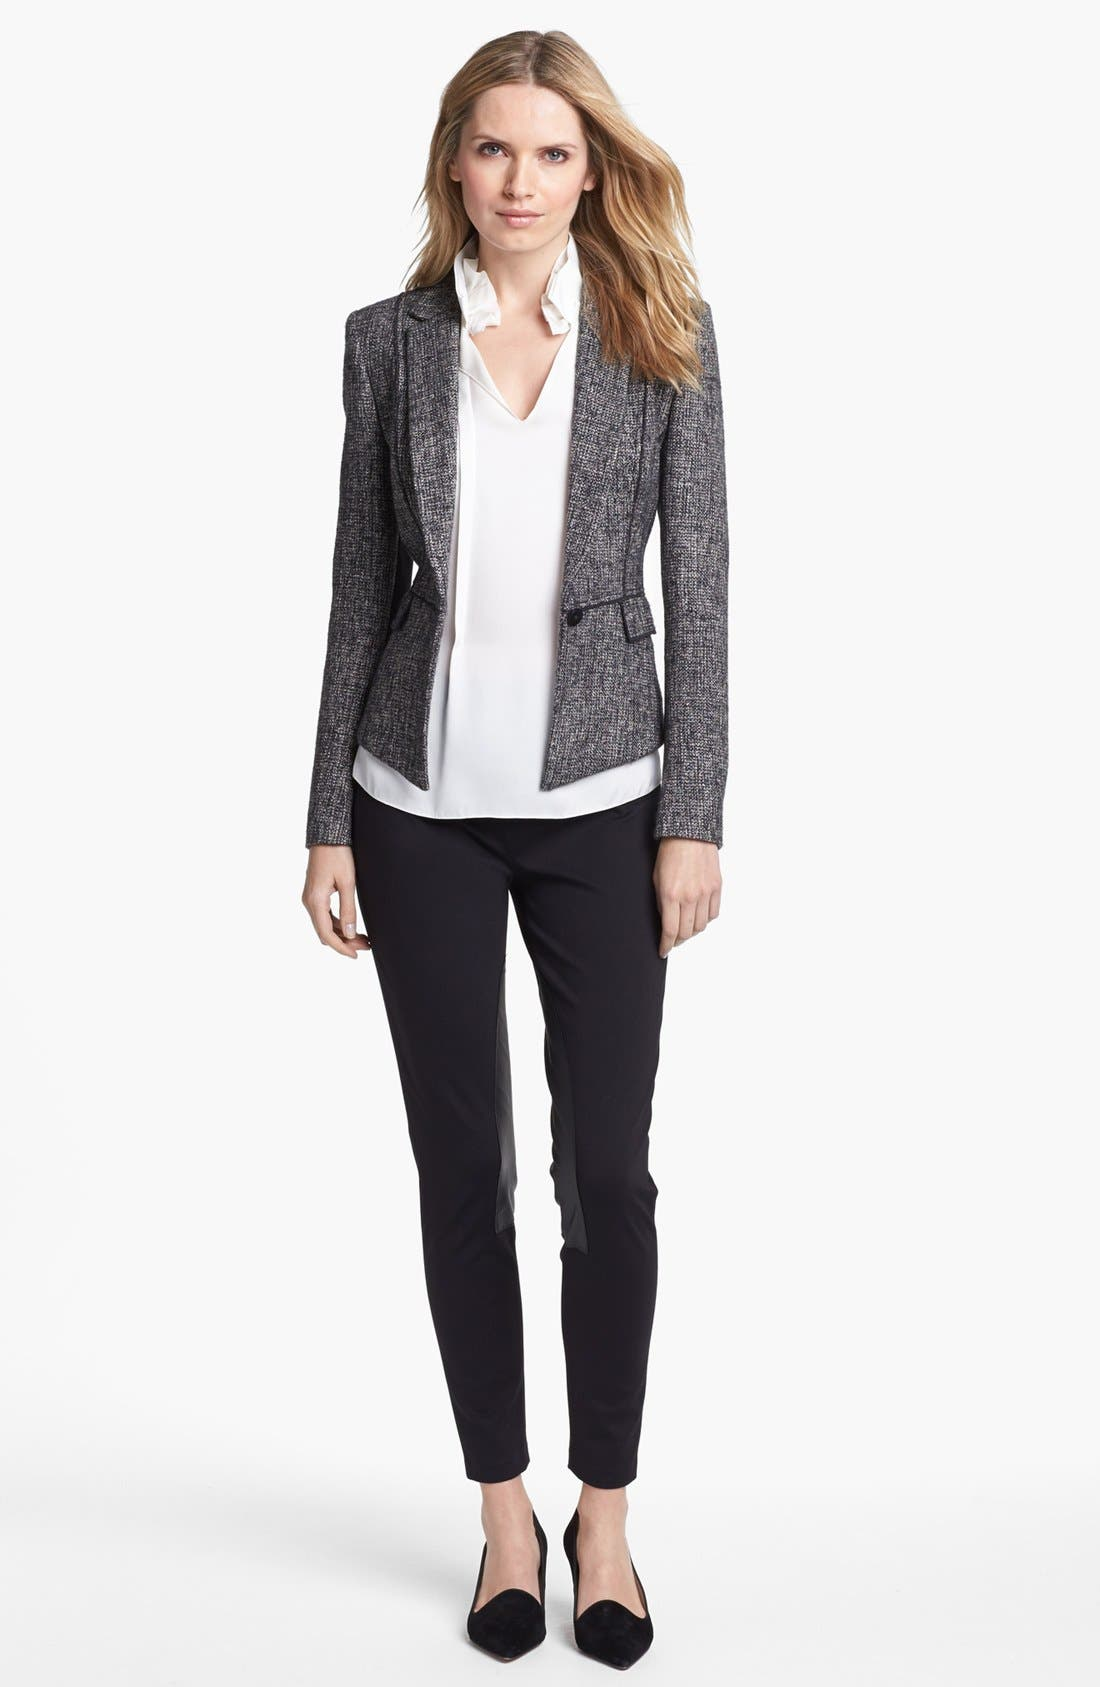 'Minka' Metallic Tweed Jacket,                             Alternate thumbnail 4, color,                             002